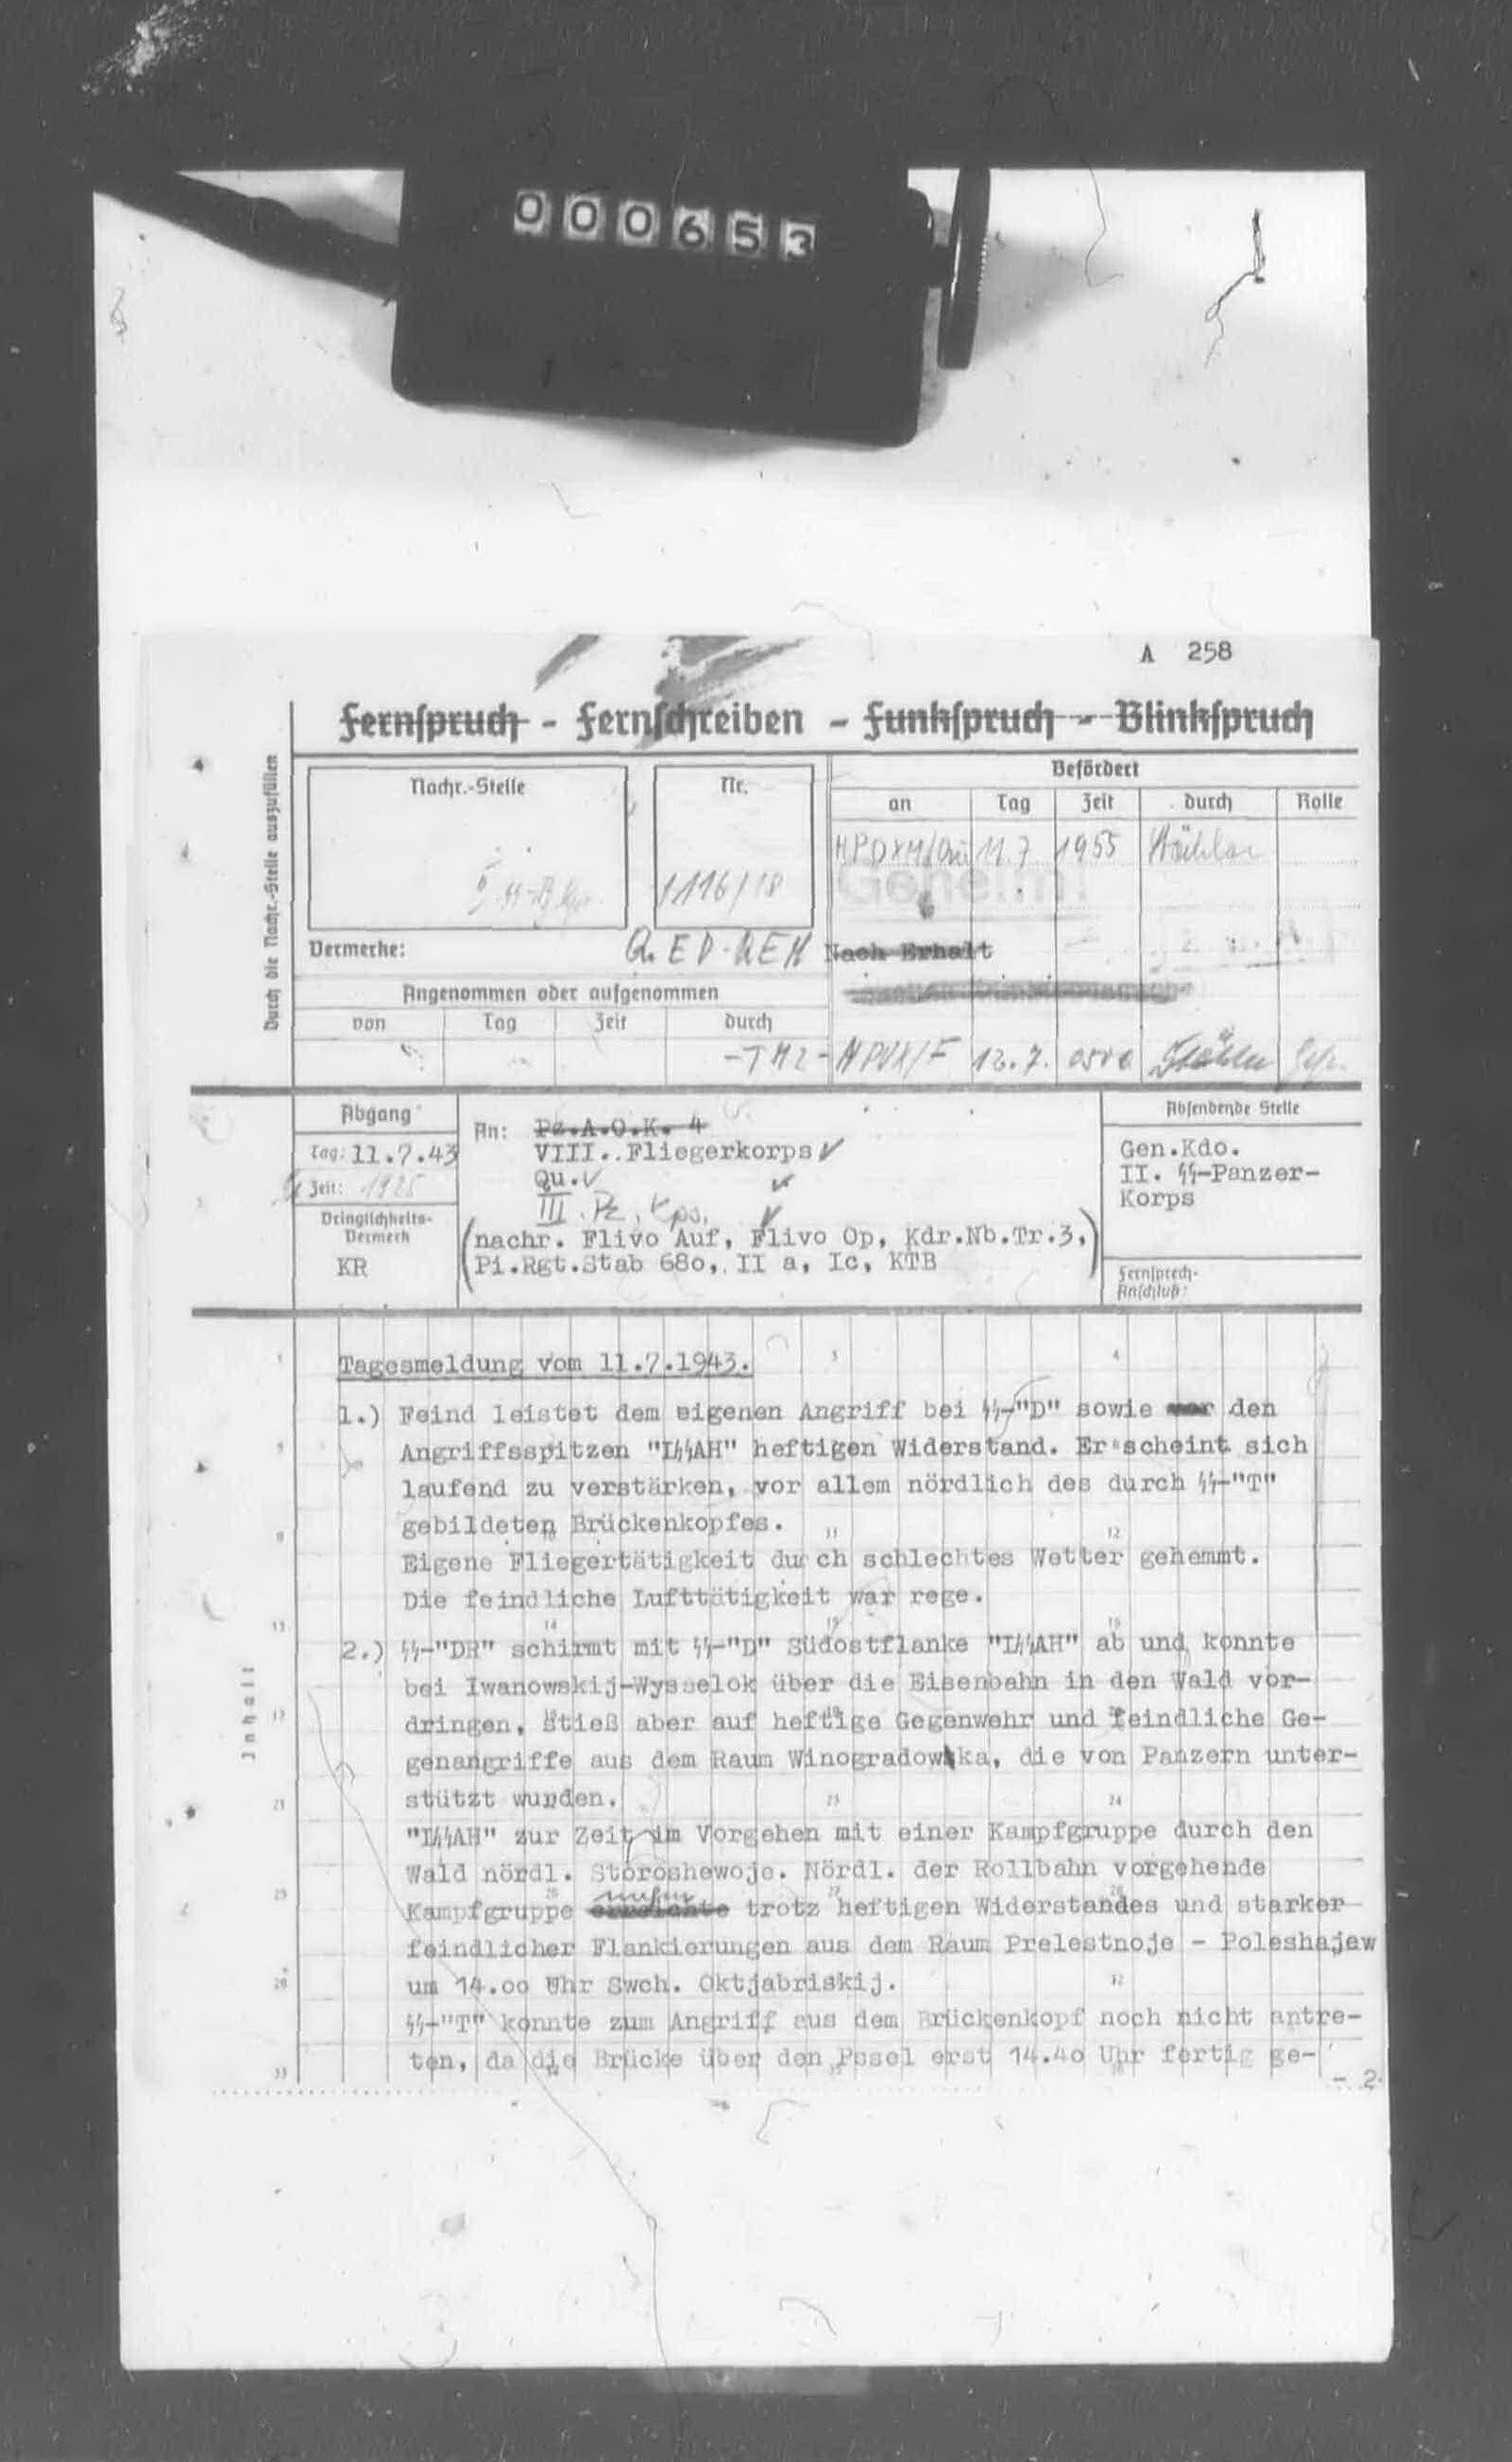 II. SS-Panzerkorps: Tagesmeldung vom 11.7.1943 - Page 1